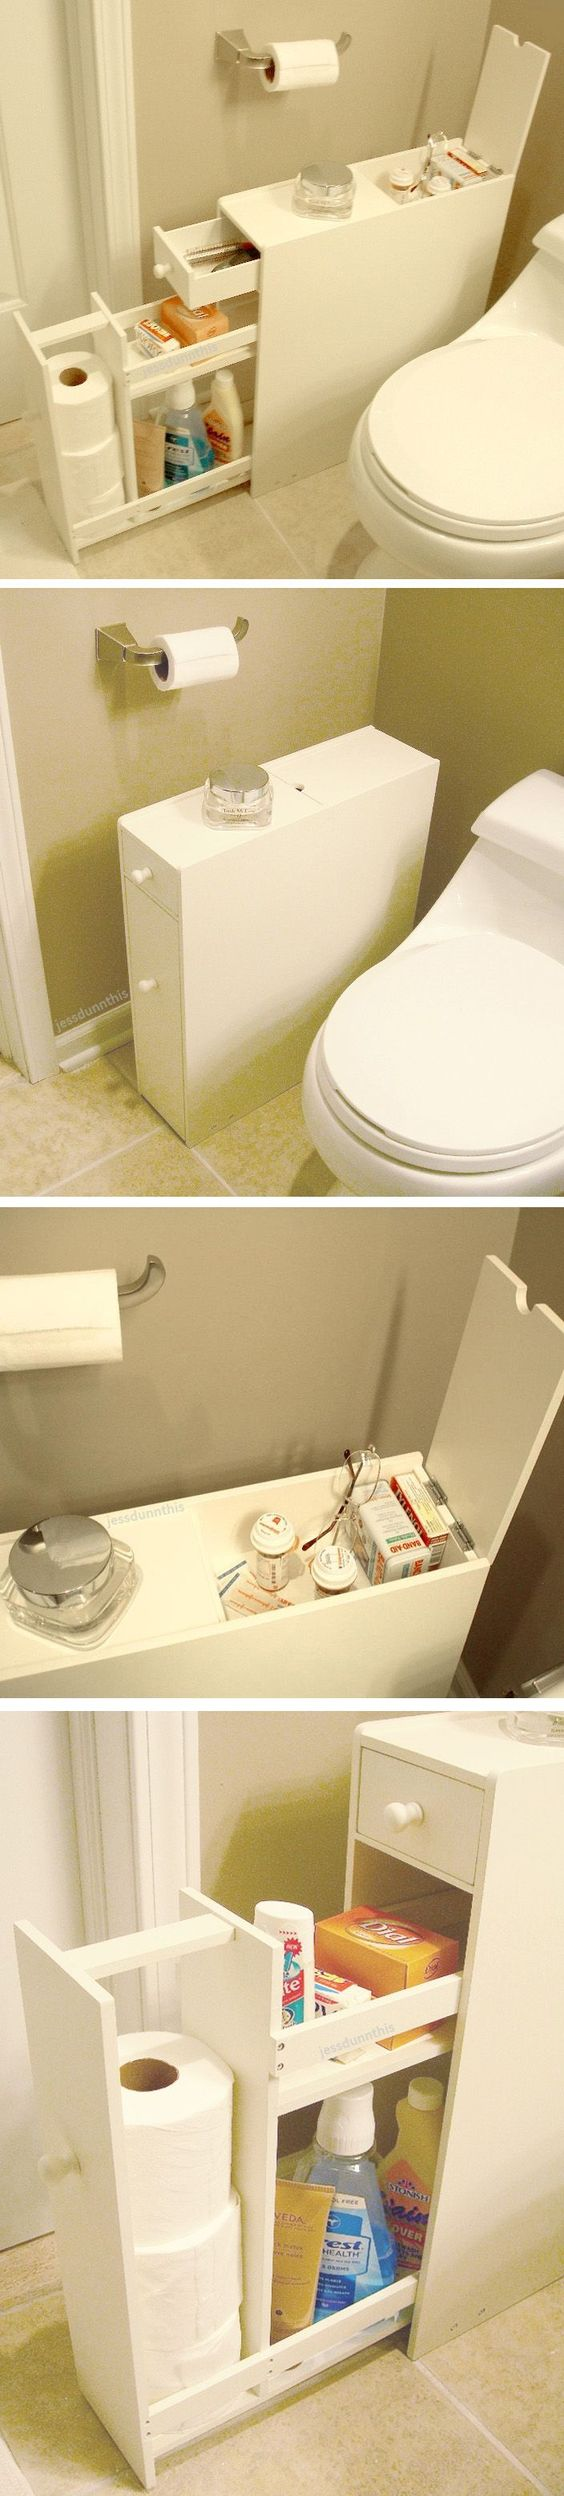 Bathroom space saver floor cabinet // stores up to 12 rolls of toilet paper and fits beside the closet - brilliant idea! #product_design: